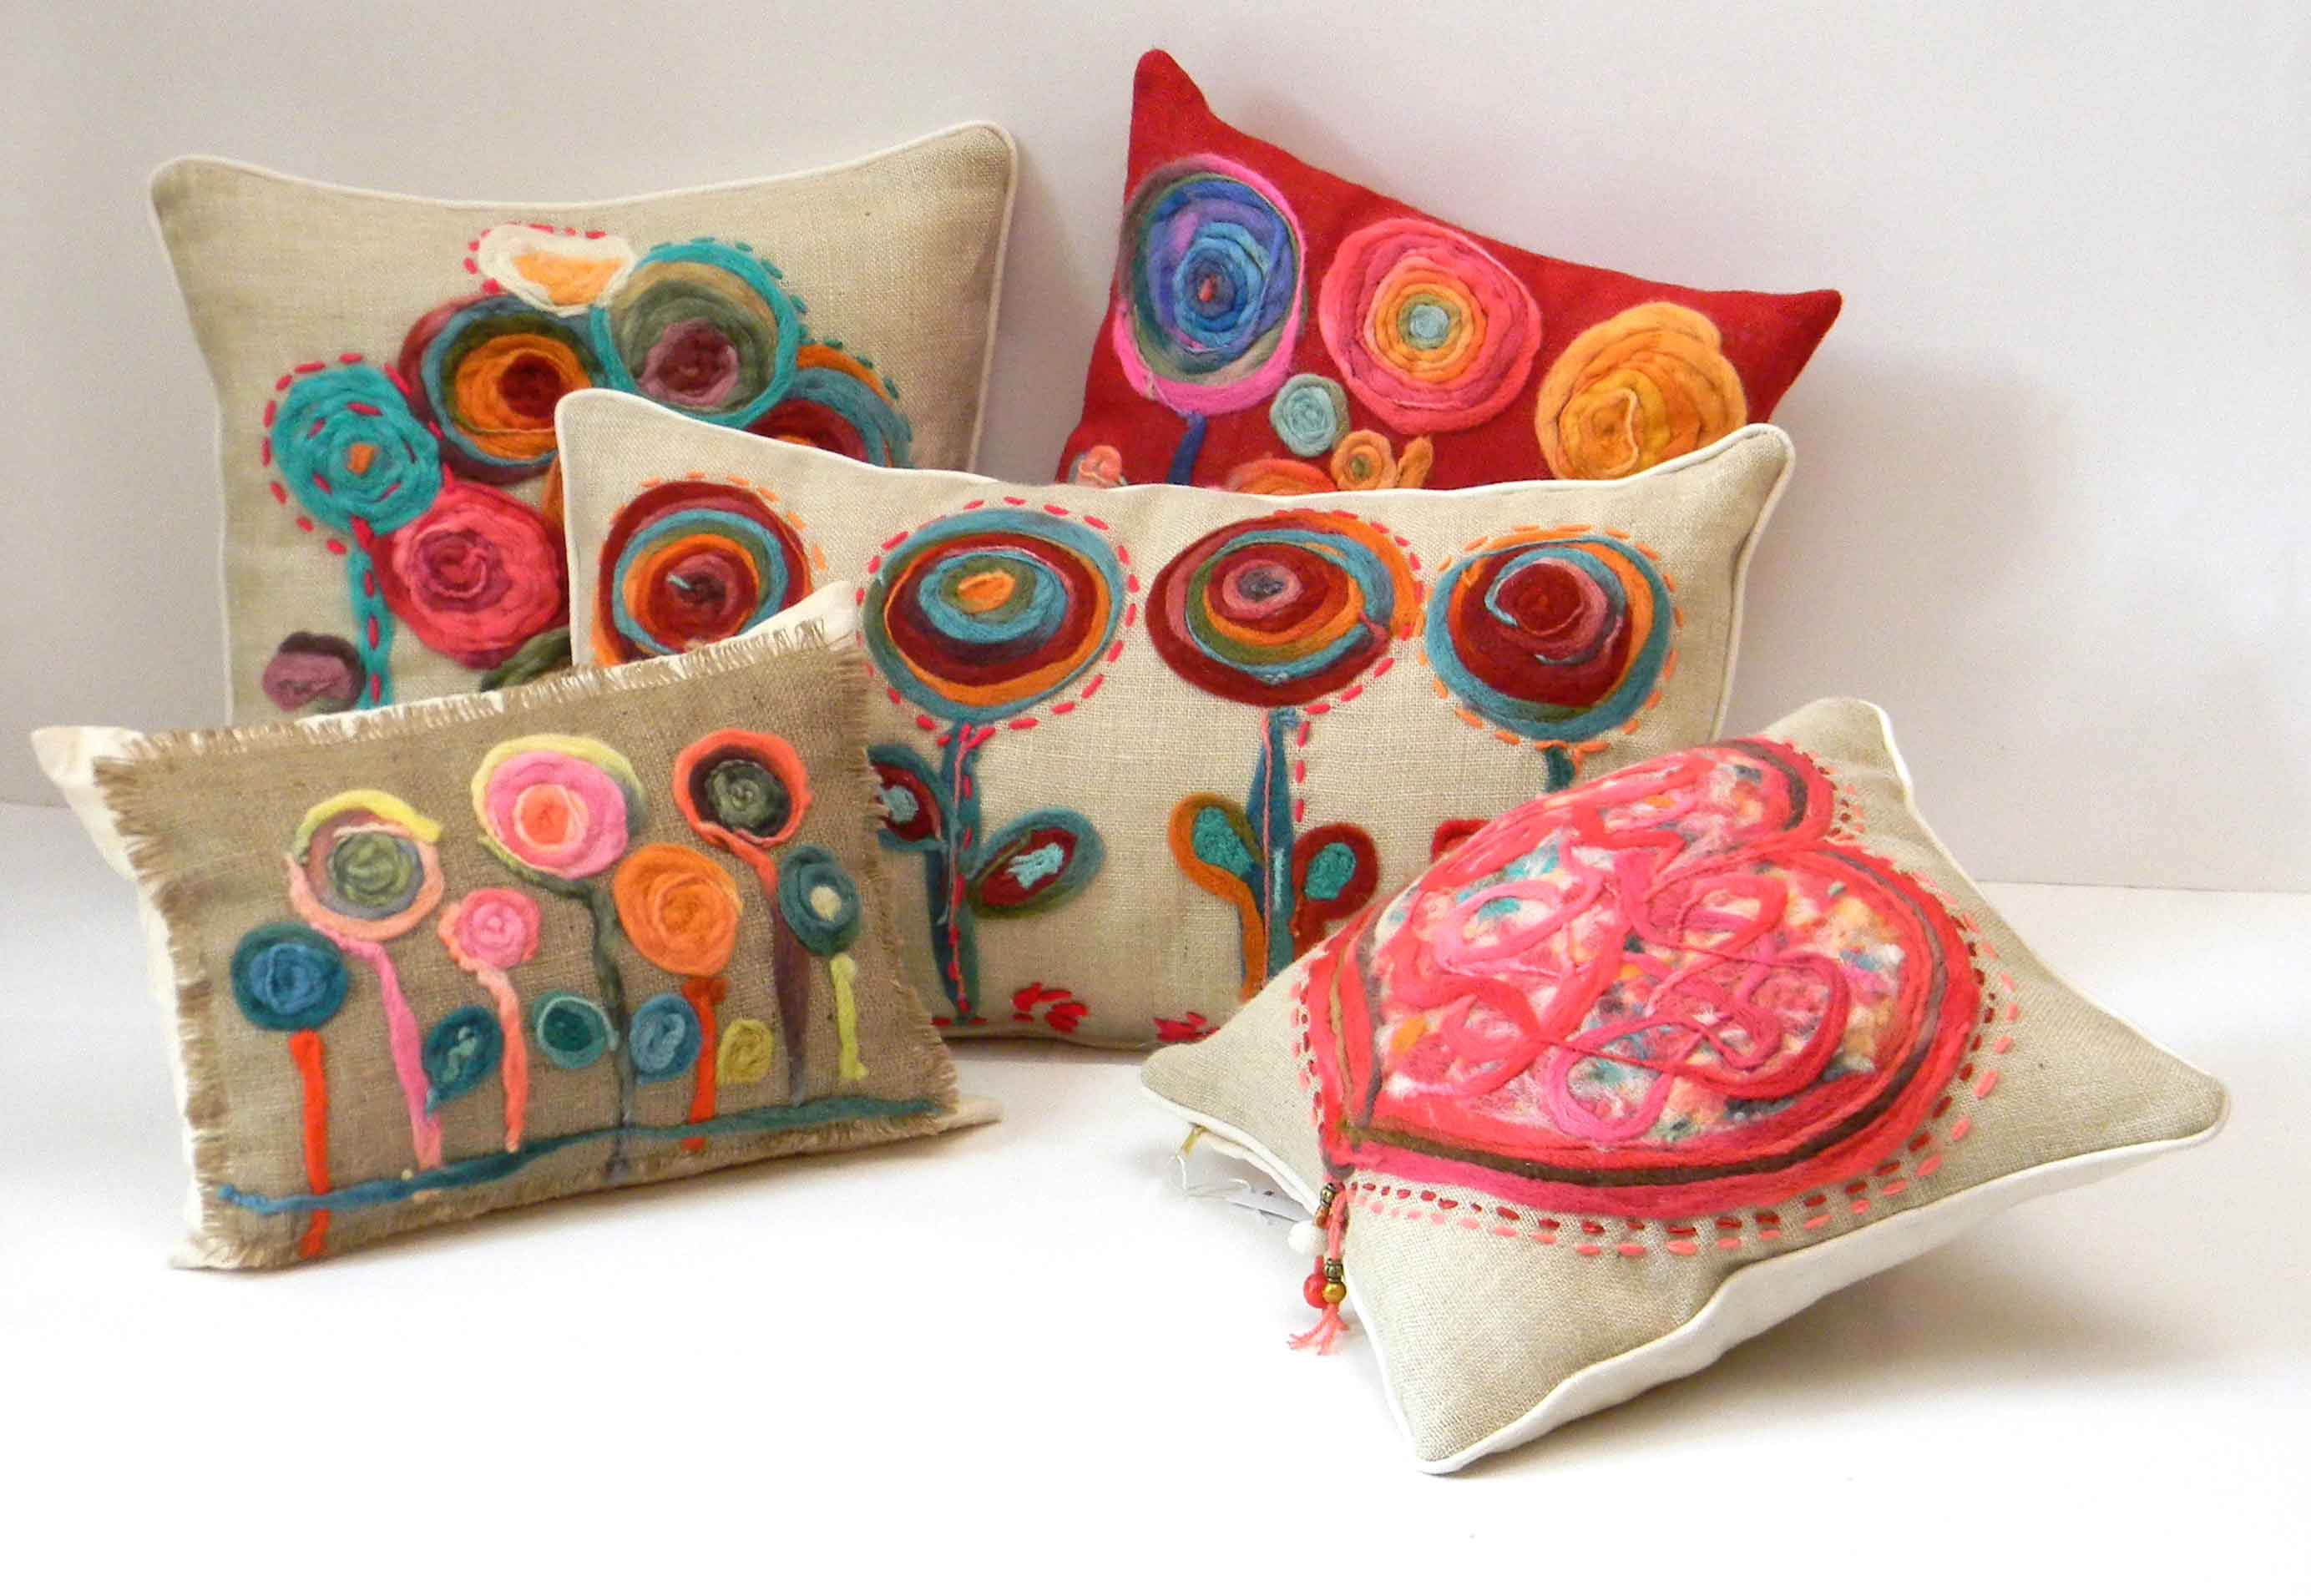 Luxury Sofa Pillows with Elegant Pattern for Living Room Interior: Assorted Multicolor Sofa Pillows